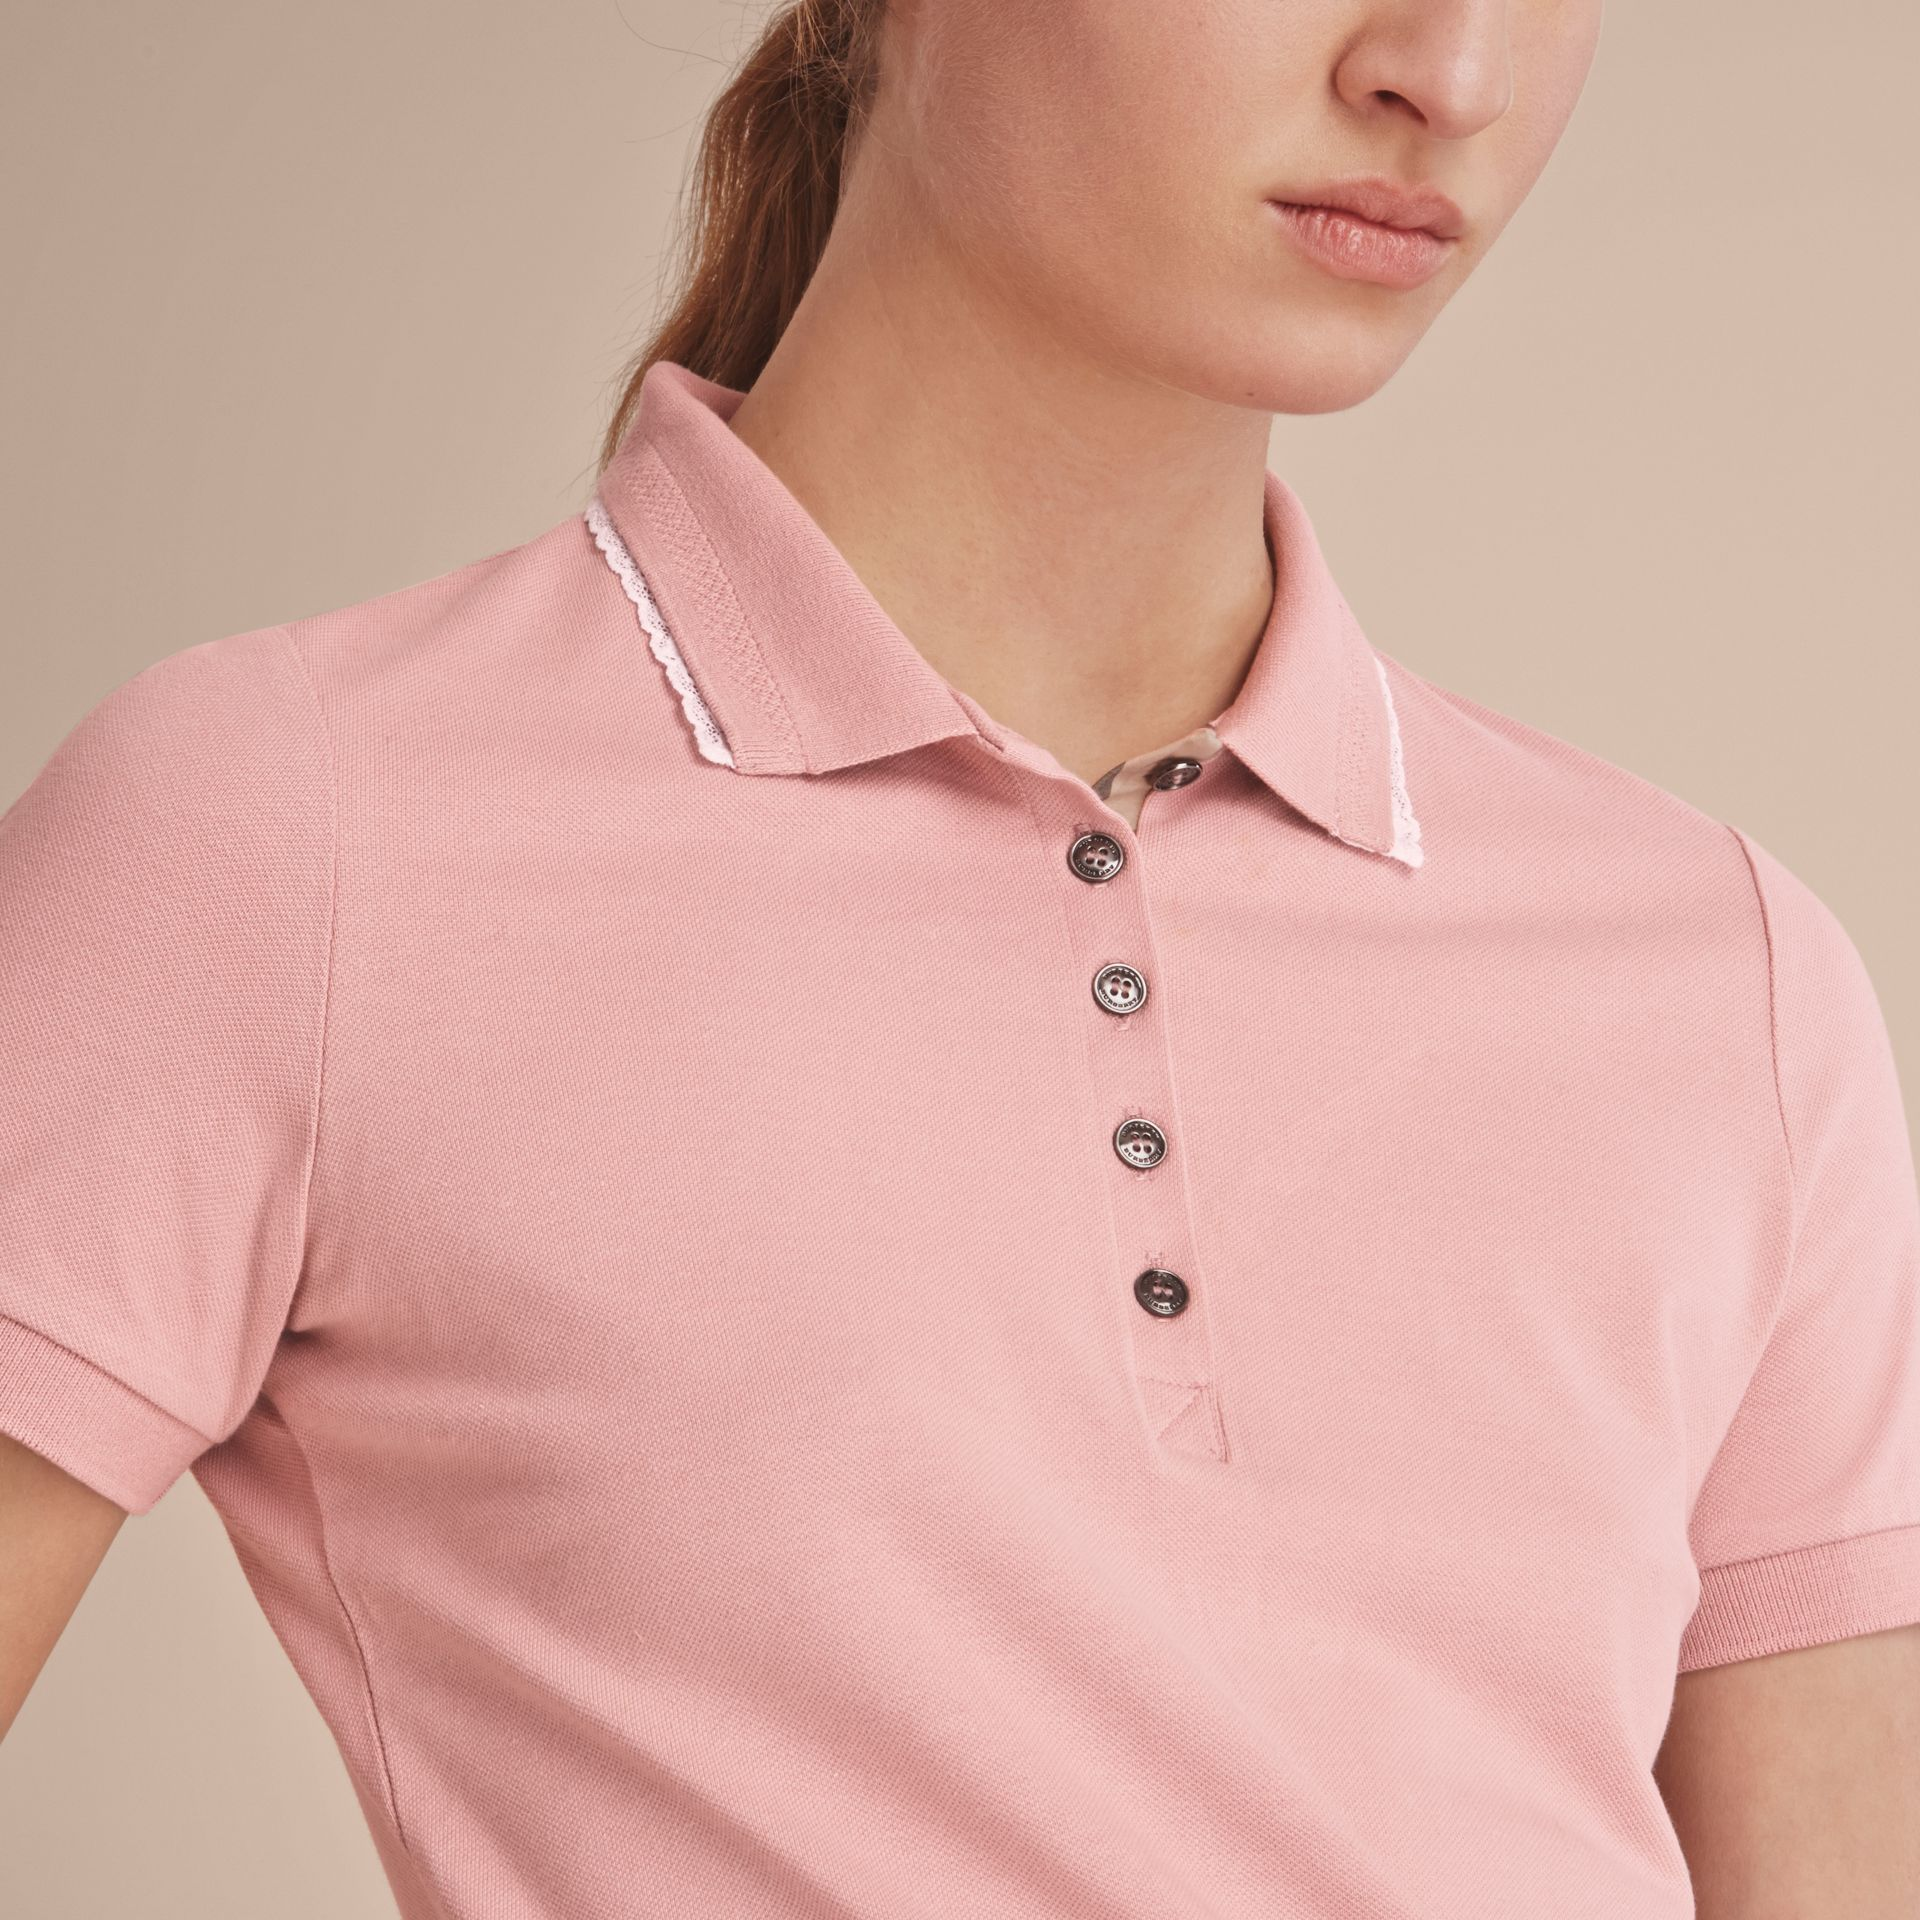 Lace Trim Cotton Blend Polo Shirt with Check Detail in Nude - Women | Burberry - gallery image 5